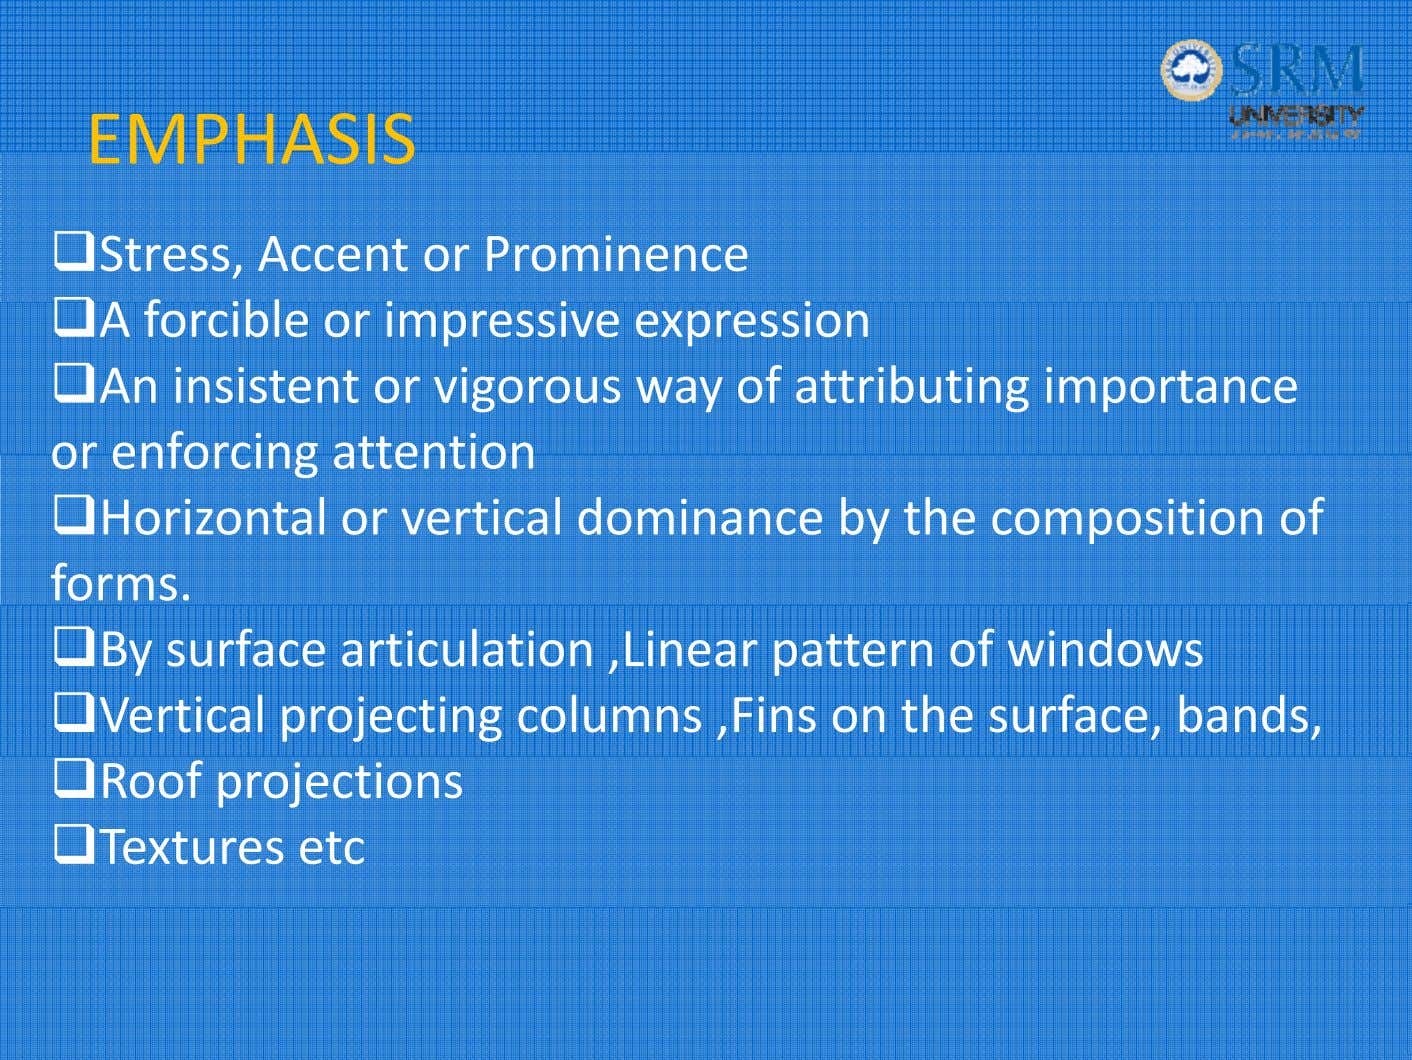 EMPHASIS Stress, Accent or Prominence A forcibl e or i mpressi ve express i on